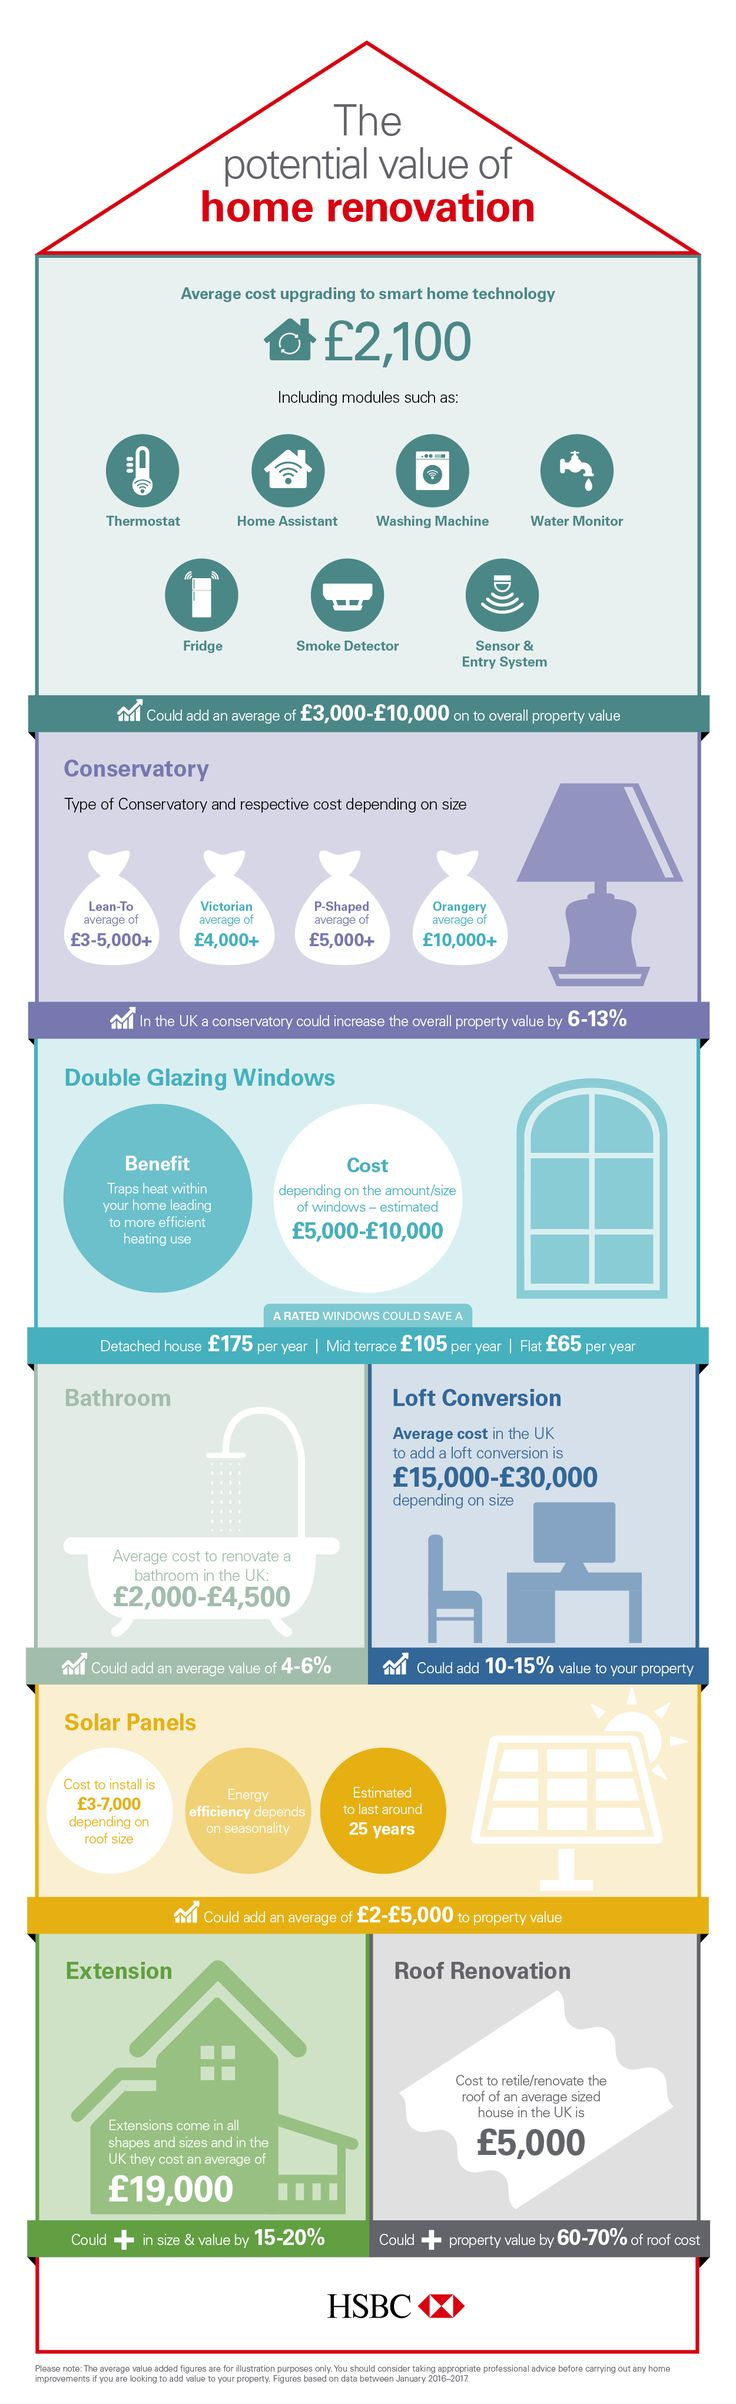 Which Home Improvements Could Add the Most Value?